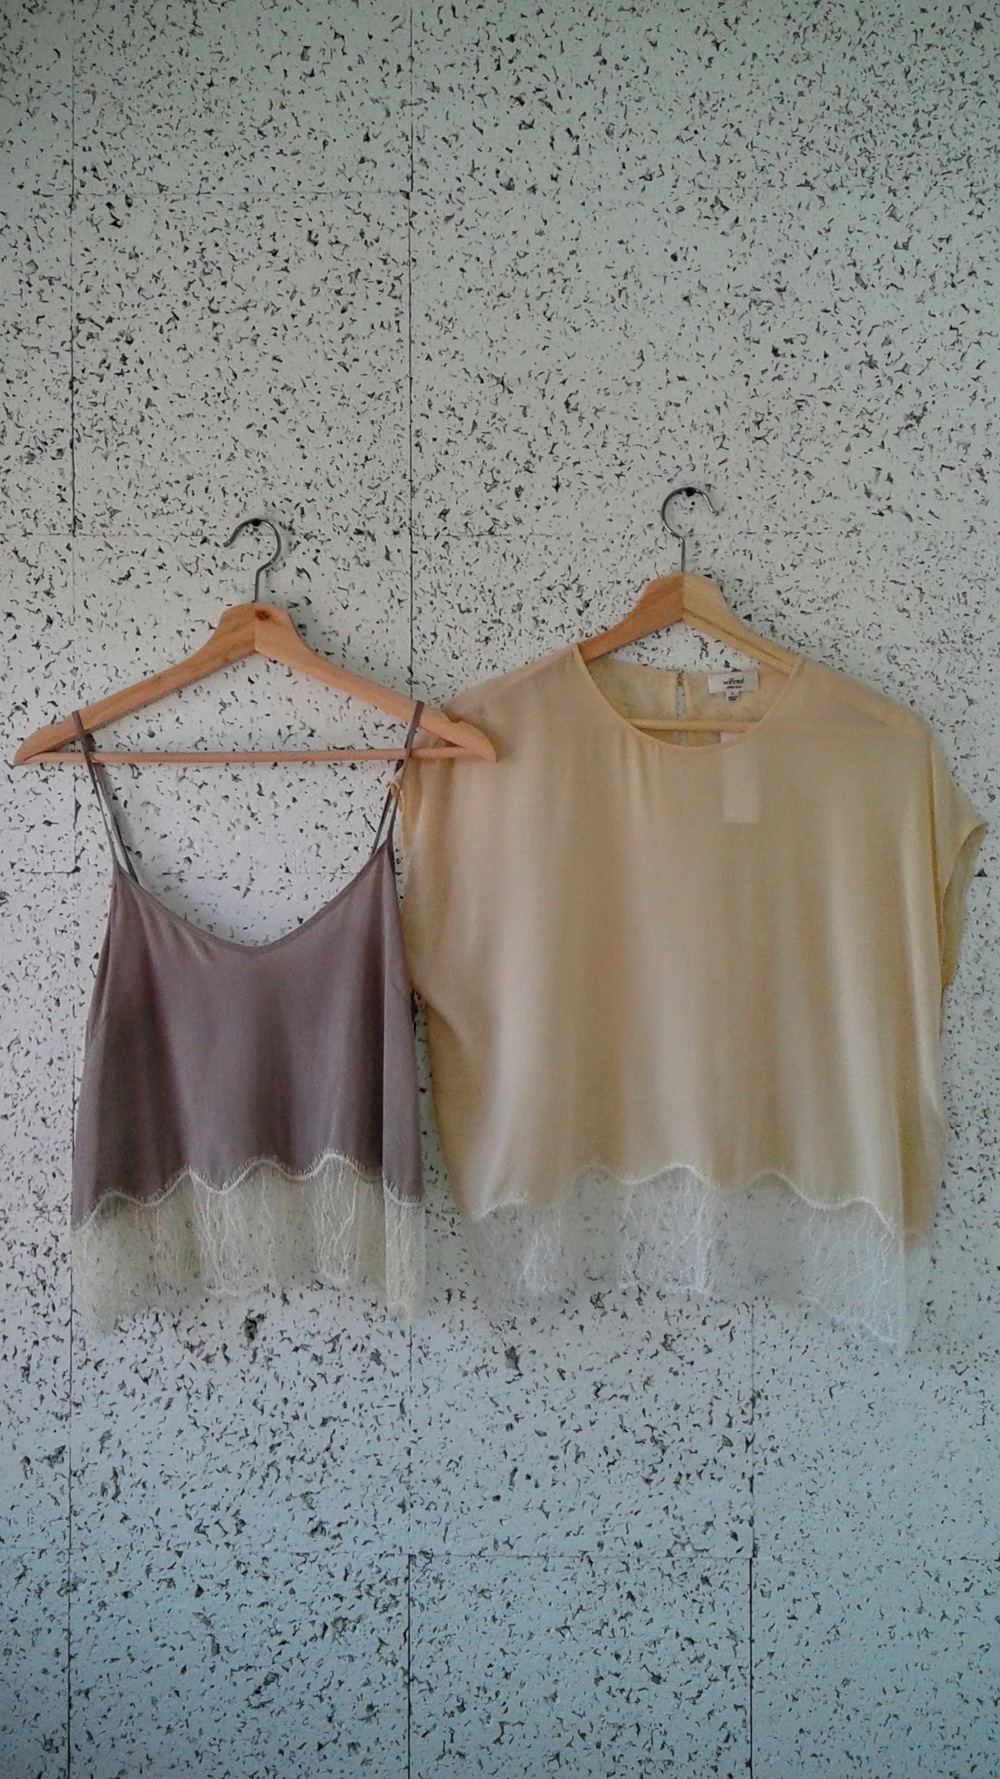 Wilfred  tops: Grey, Size M, $26; Cream, Size S, $32